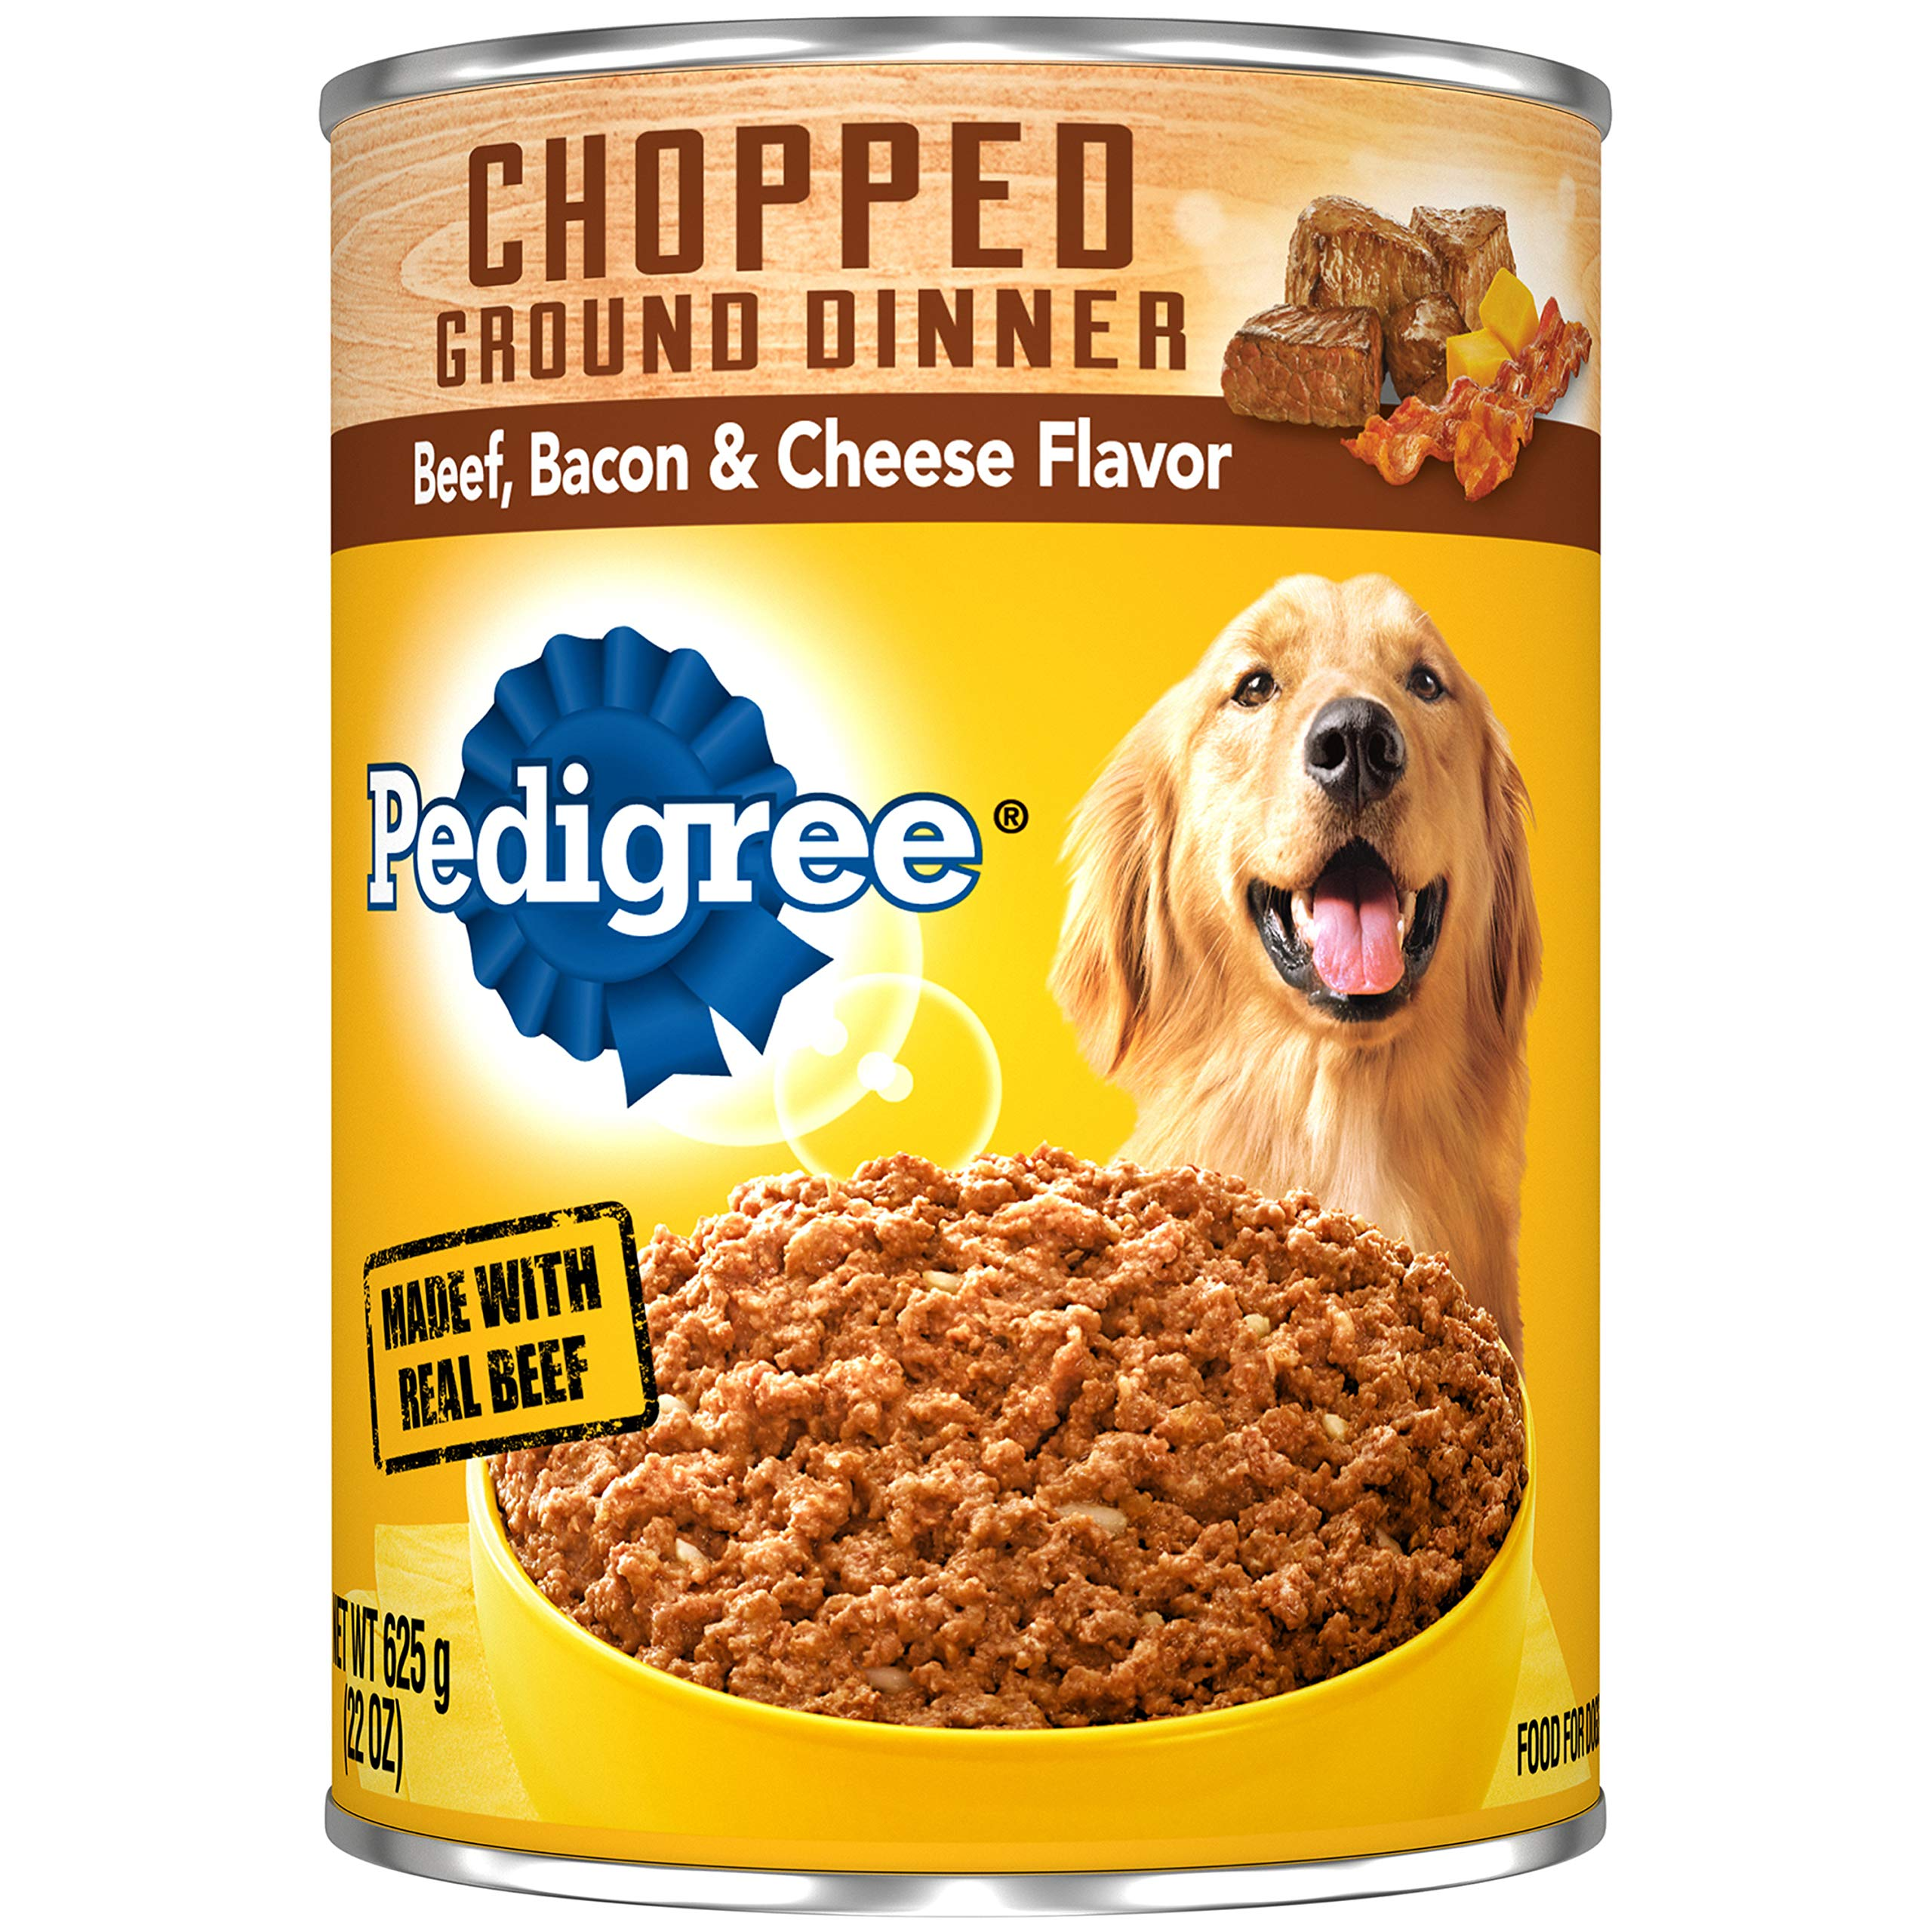 Pedigree Chopped Ground Dinner Beef, Bacon & Cheese Flavor Adult Canned Wet Dog Food, (12) 22 oz. Cans by Pedigree